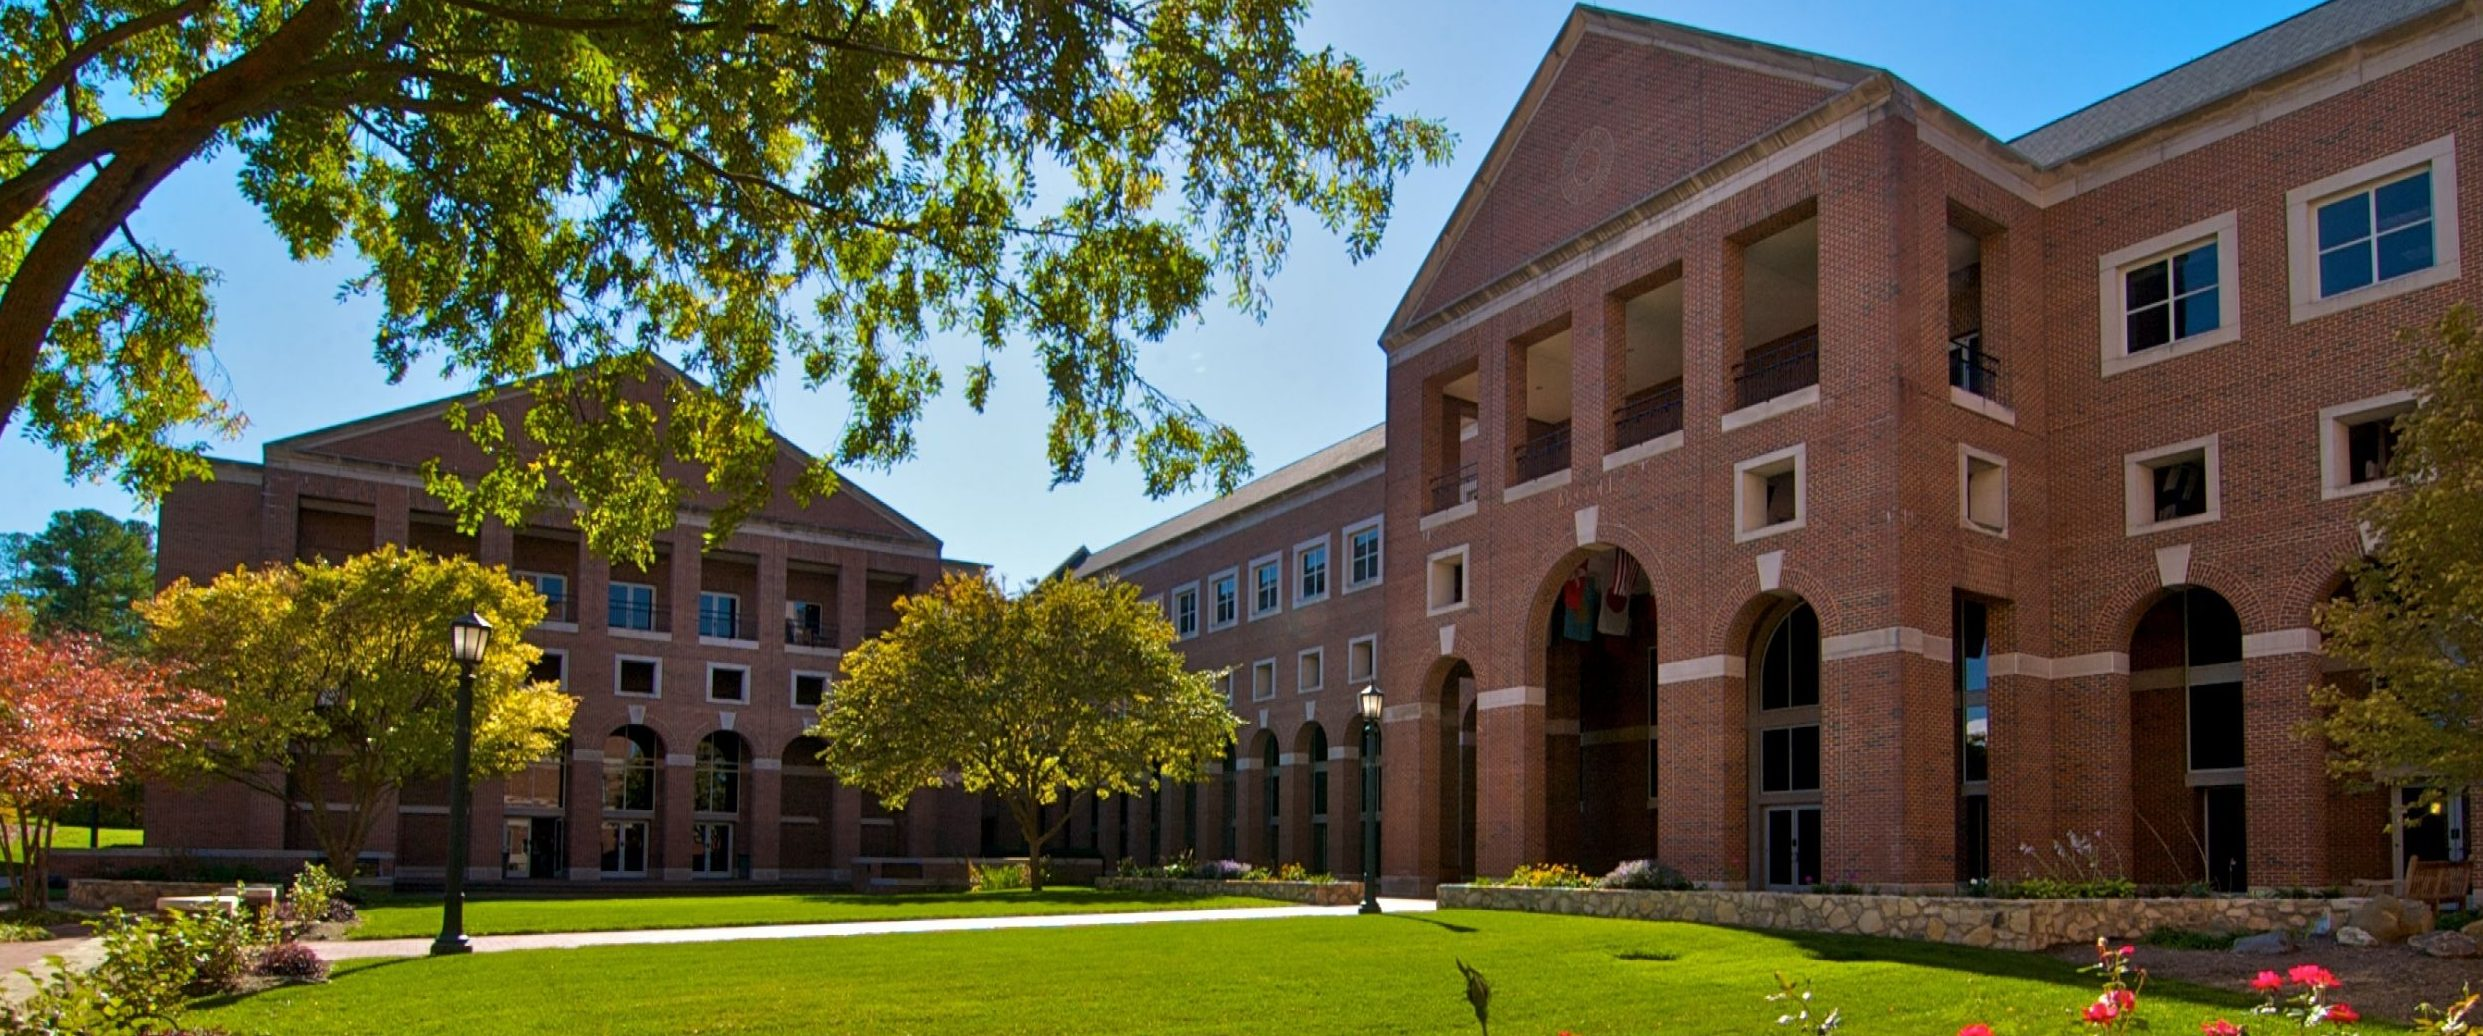 Kenan-Flagler Business School